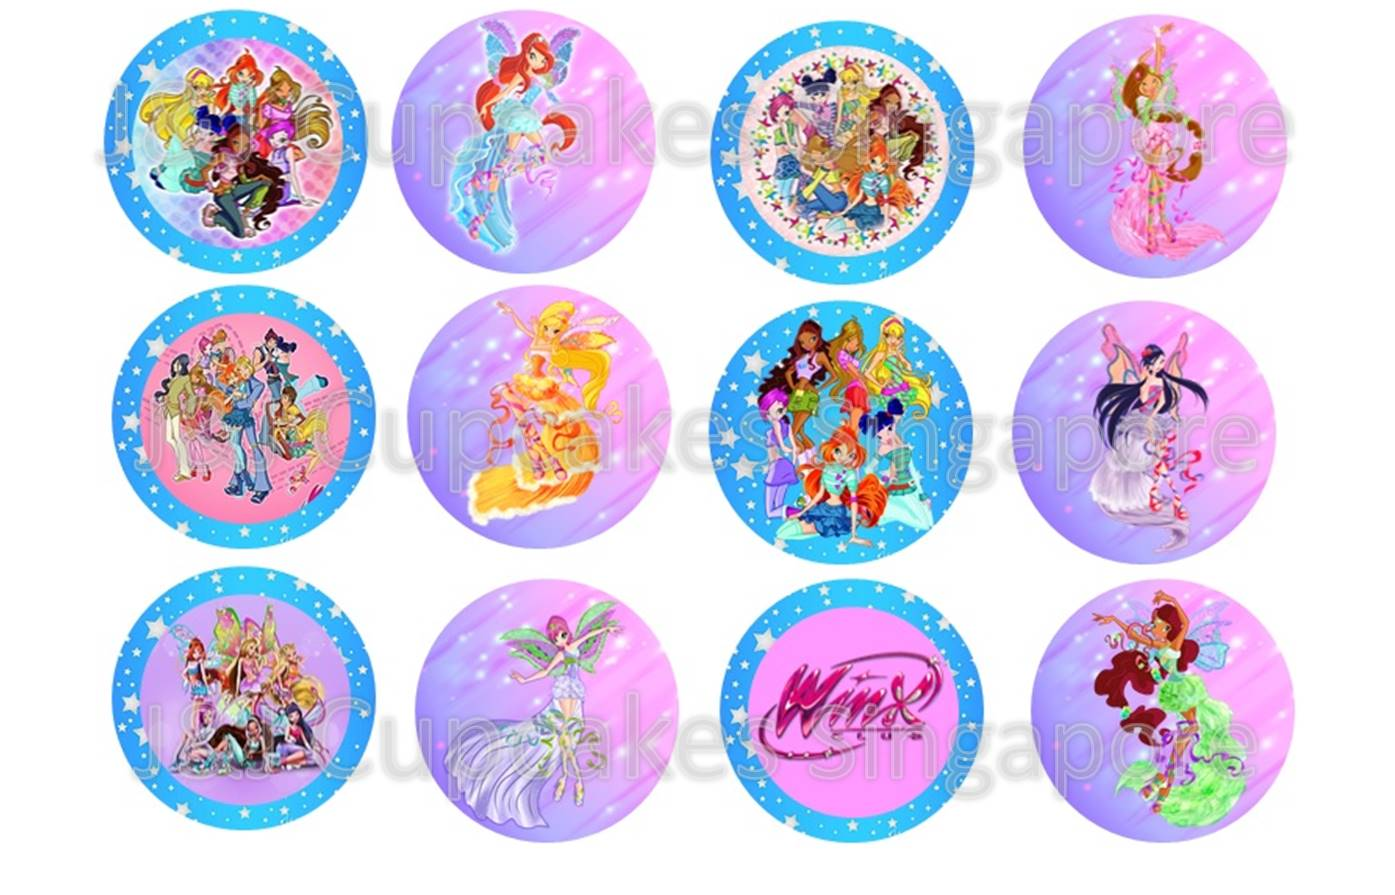 Winx Club Cake Toppers Singapore